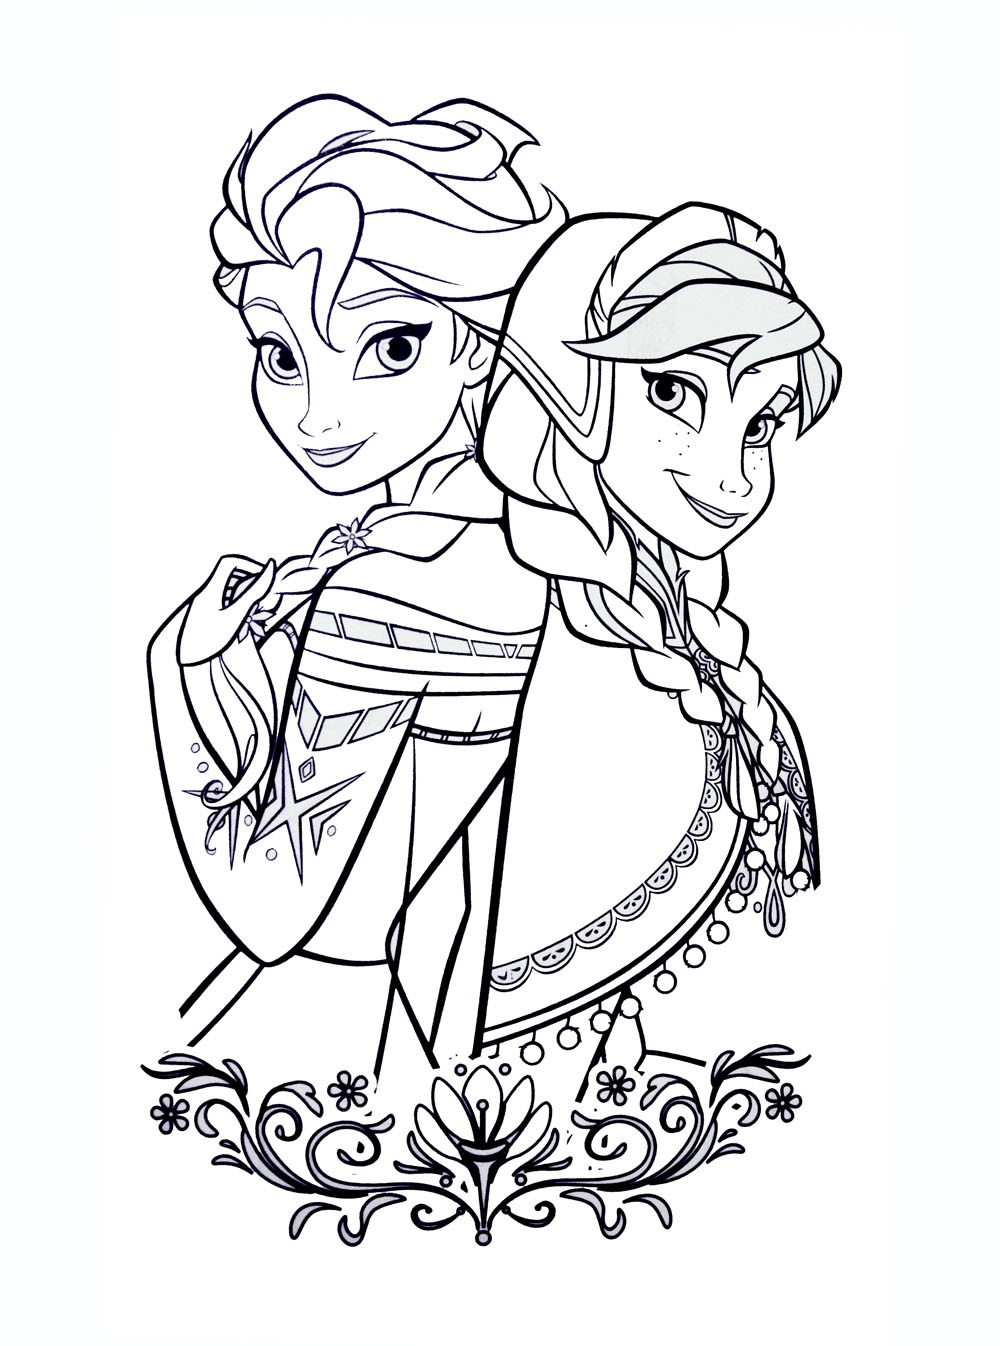 Frozen Free To Color For Kids